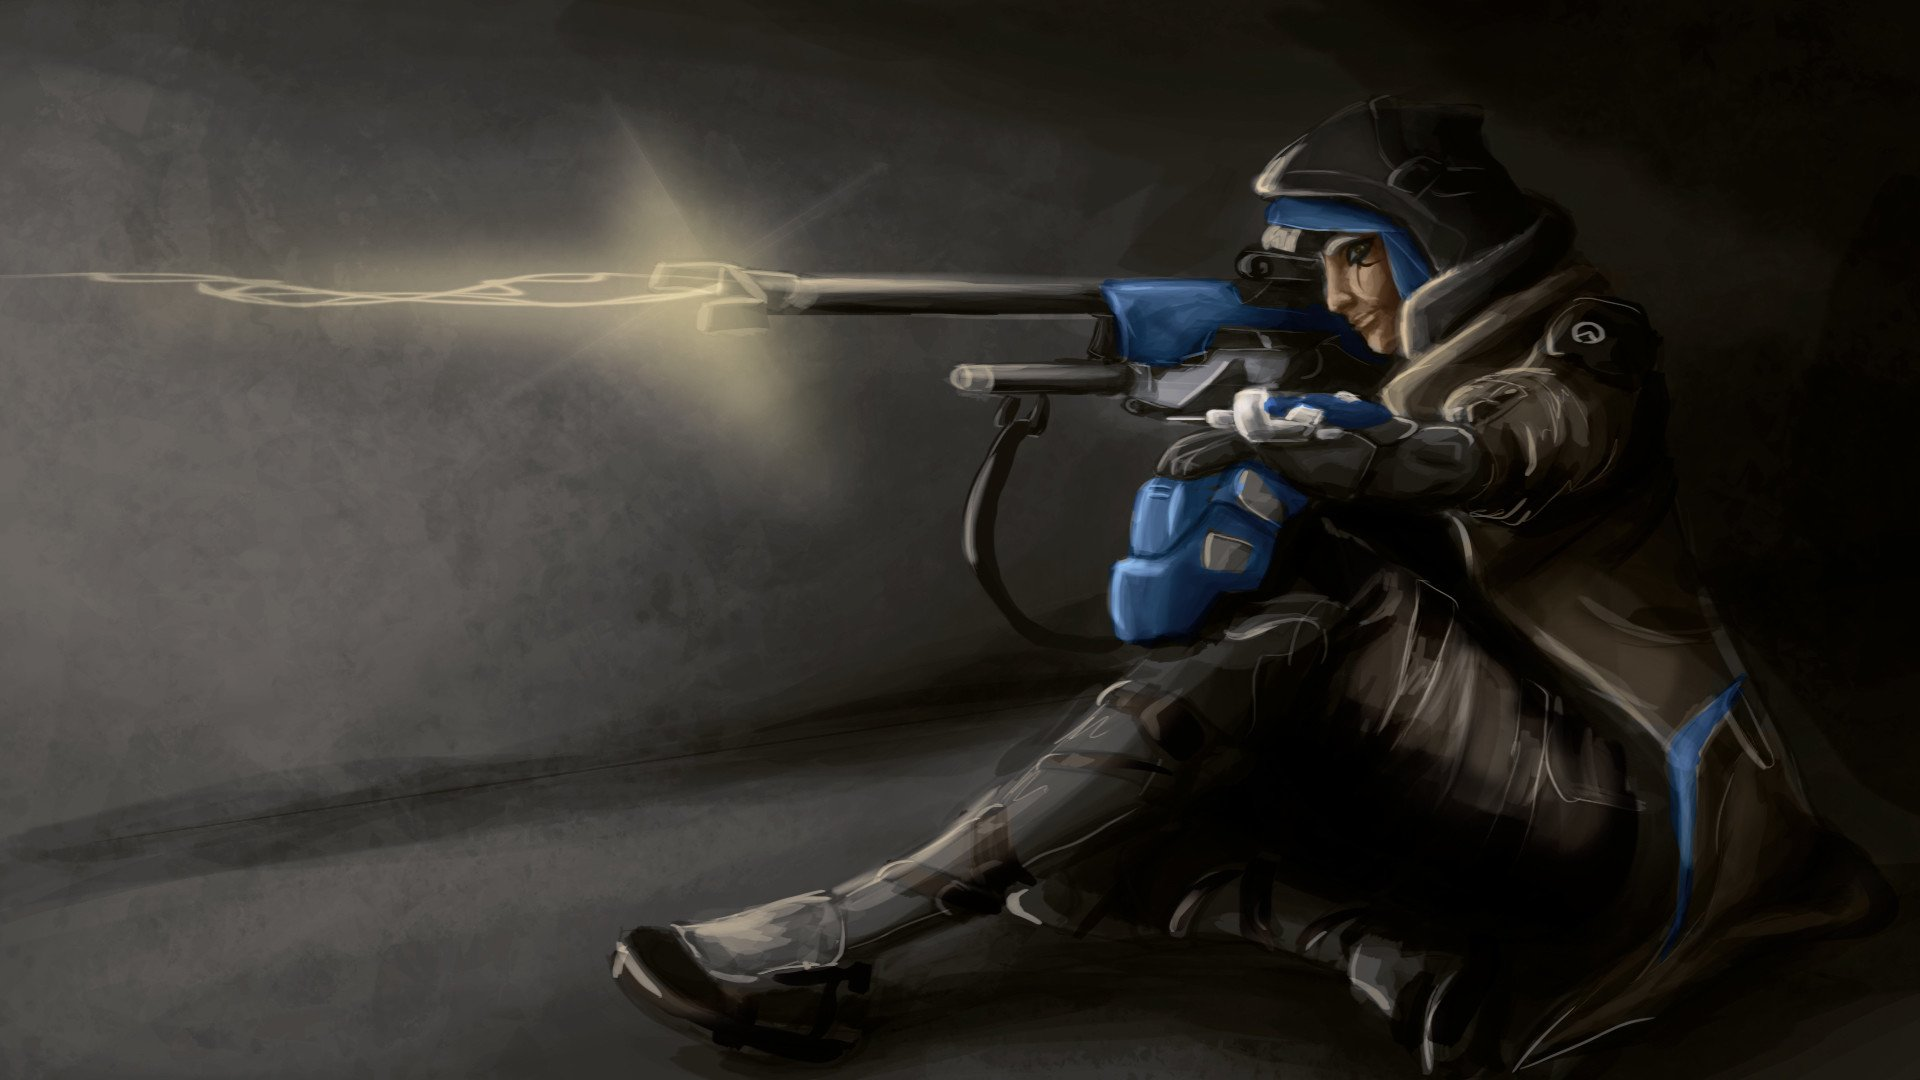 55 Ana Overwatch Hd Wallpapers Background Images Wallpaper Abyss